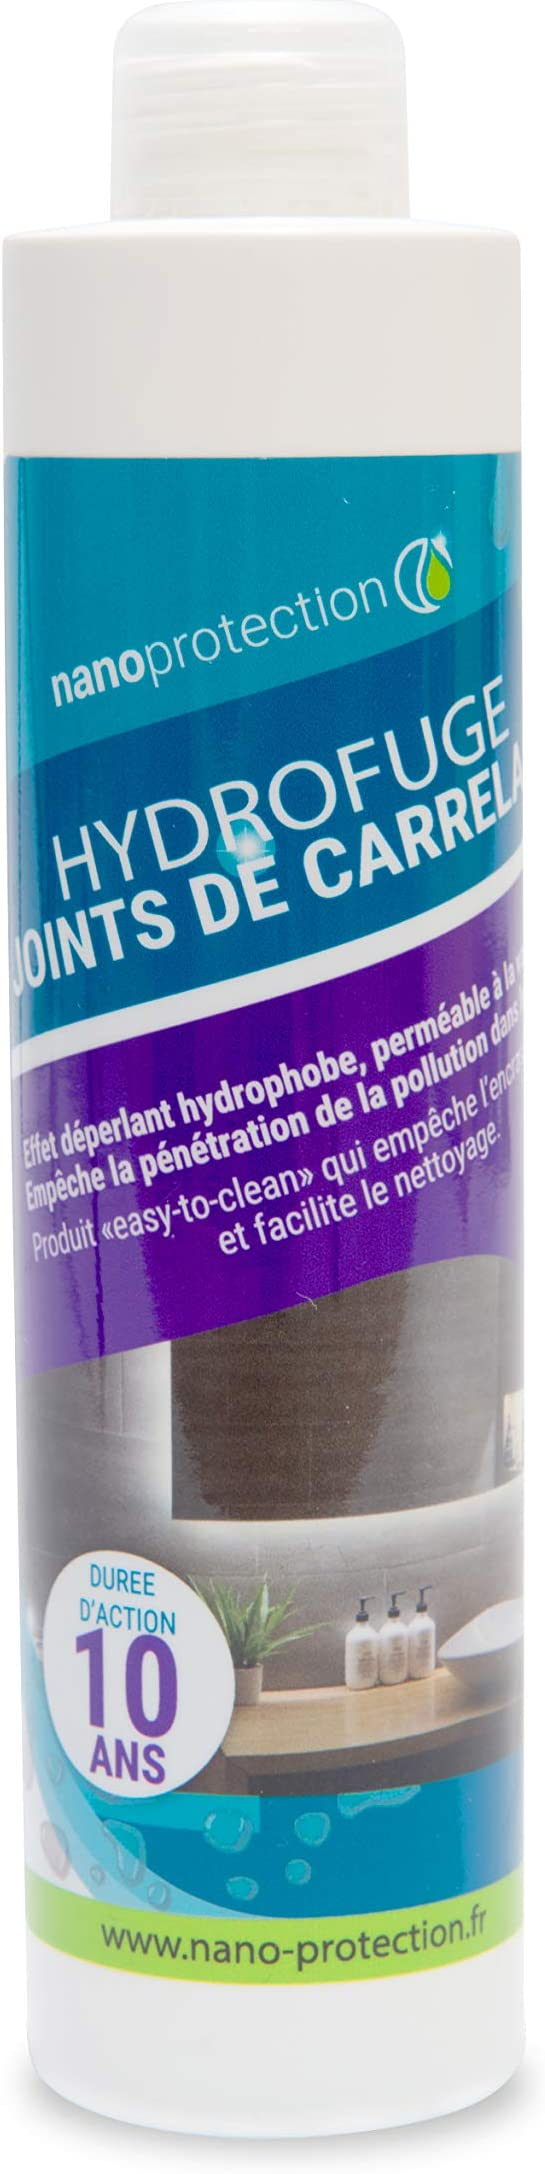 Nanoprotection Traitement Nano Hydrofuge Joints De Carrelage A Base D Eau Flacon 250 Ml 25 M Environ Amazon Fr Cuisine Maison